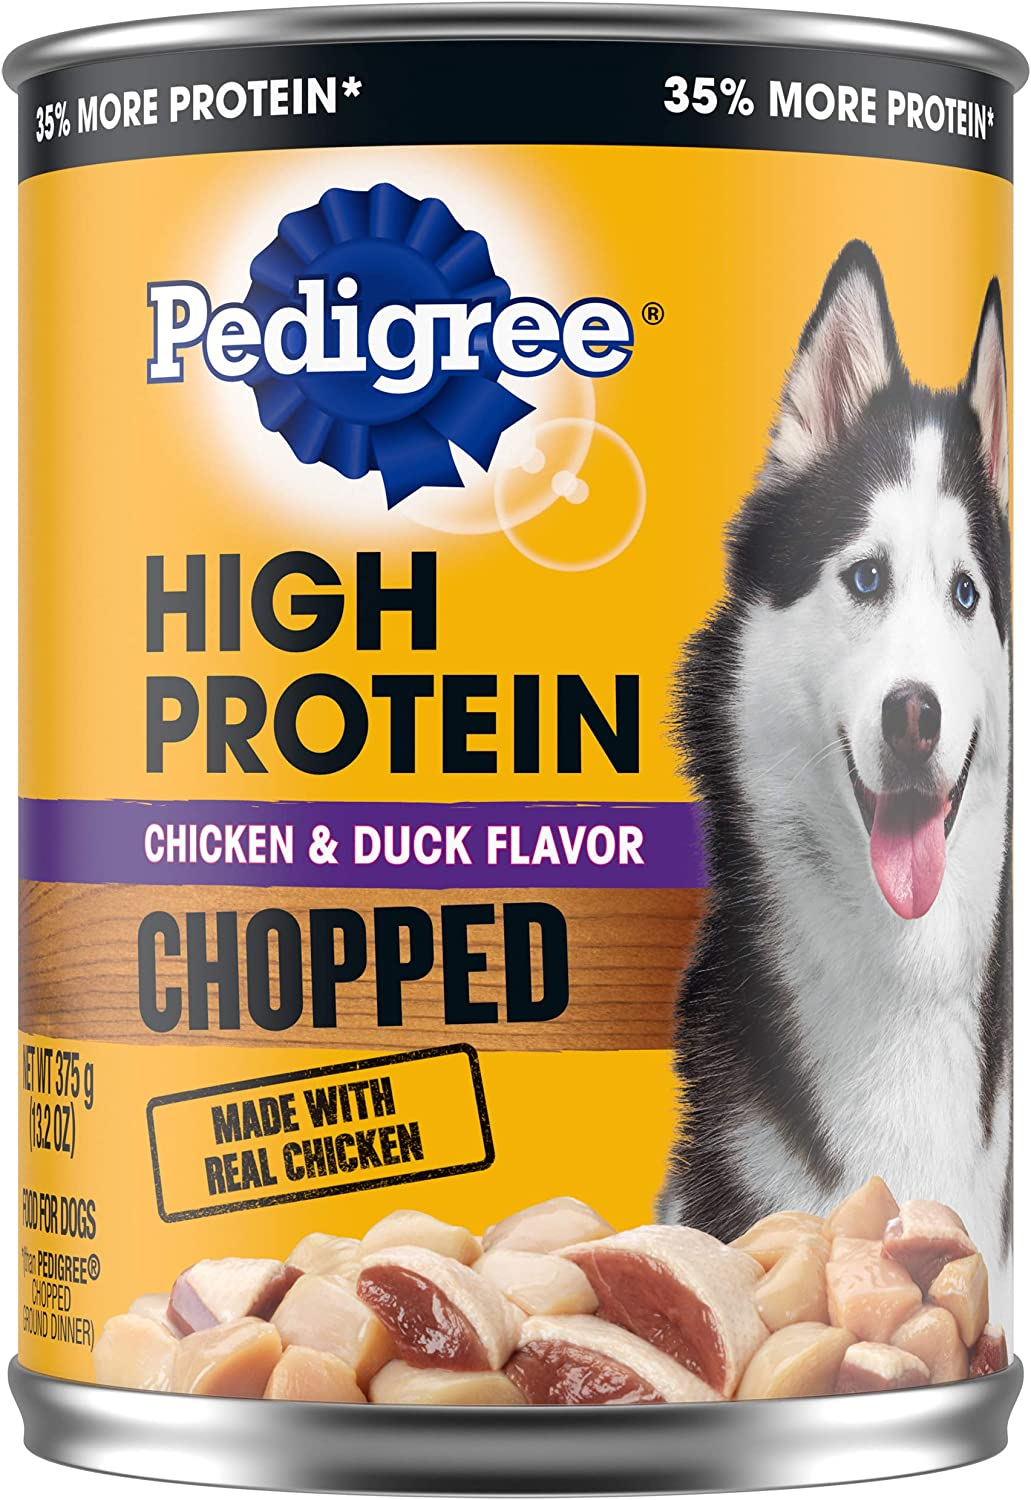 PEDIGREE High Protein Adult Canned Soft Wet Dog Food, Chopped Chicken & Duck Flavor, (12) 13.2 oz. Cans